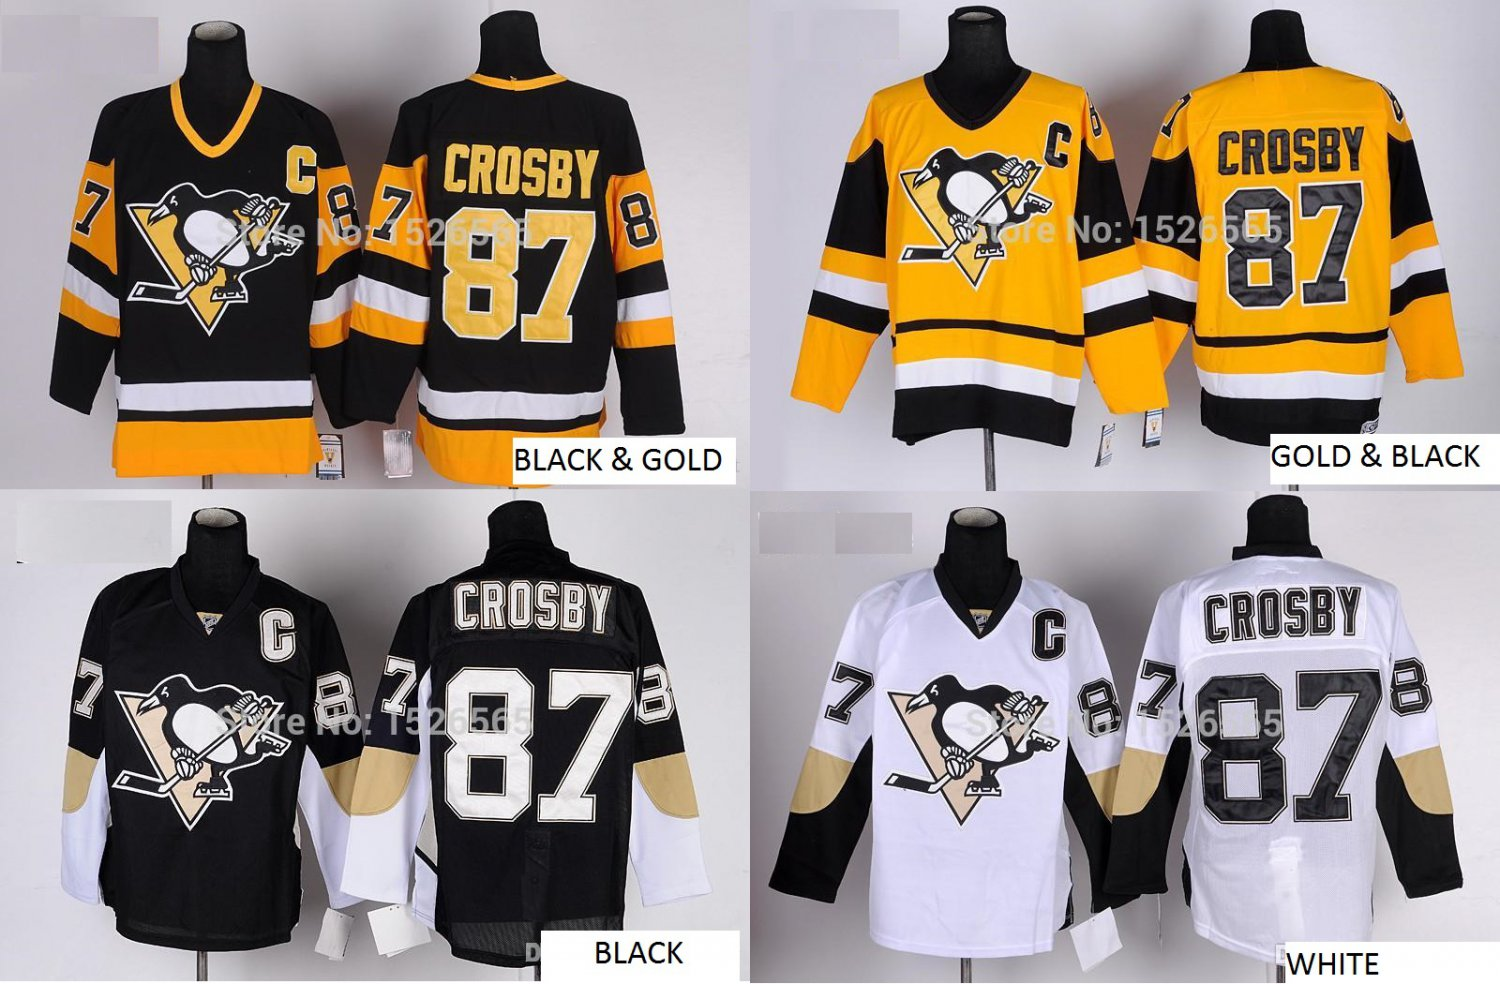 Sydney Crosby Pittsburgh Penguins #87 Replica Hockey Jersey Multiple styles